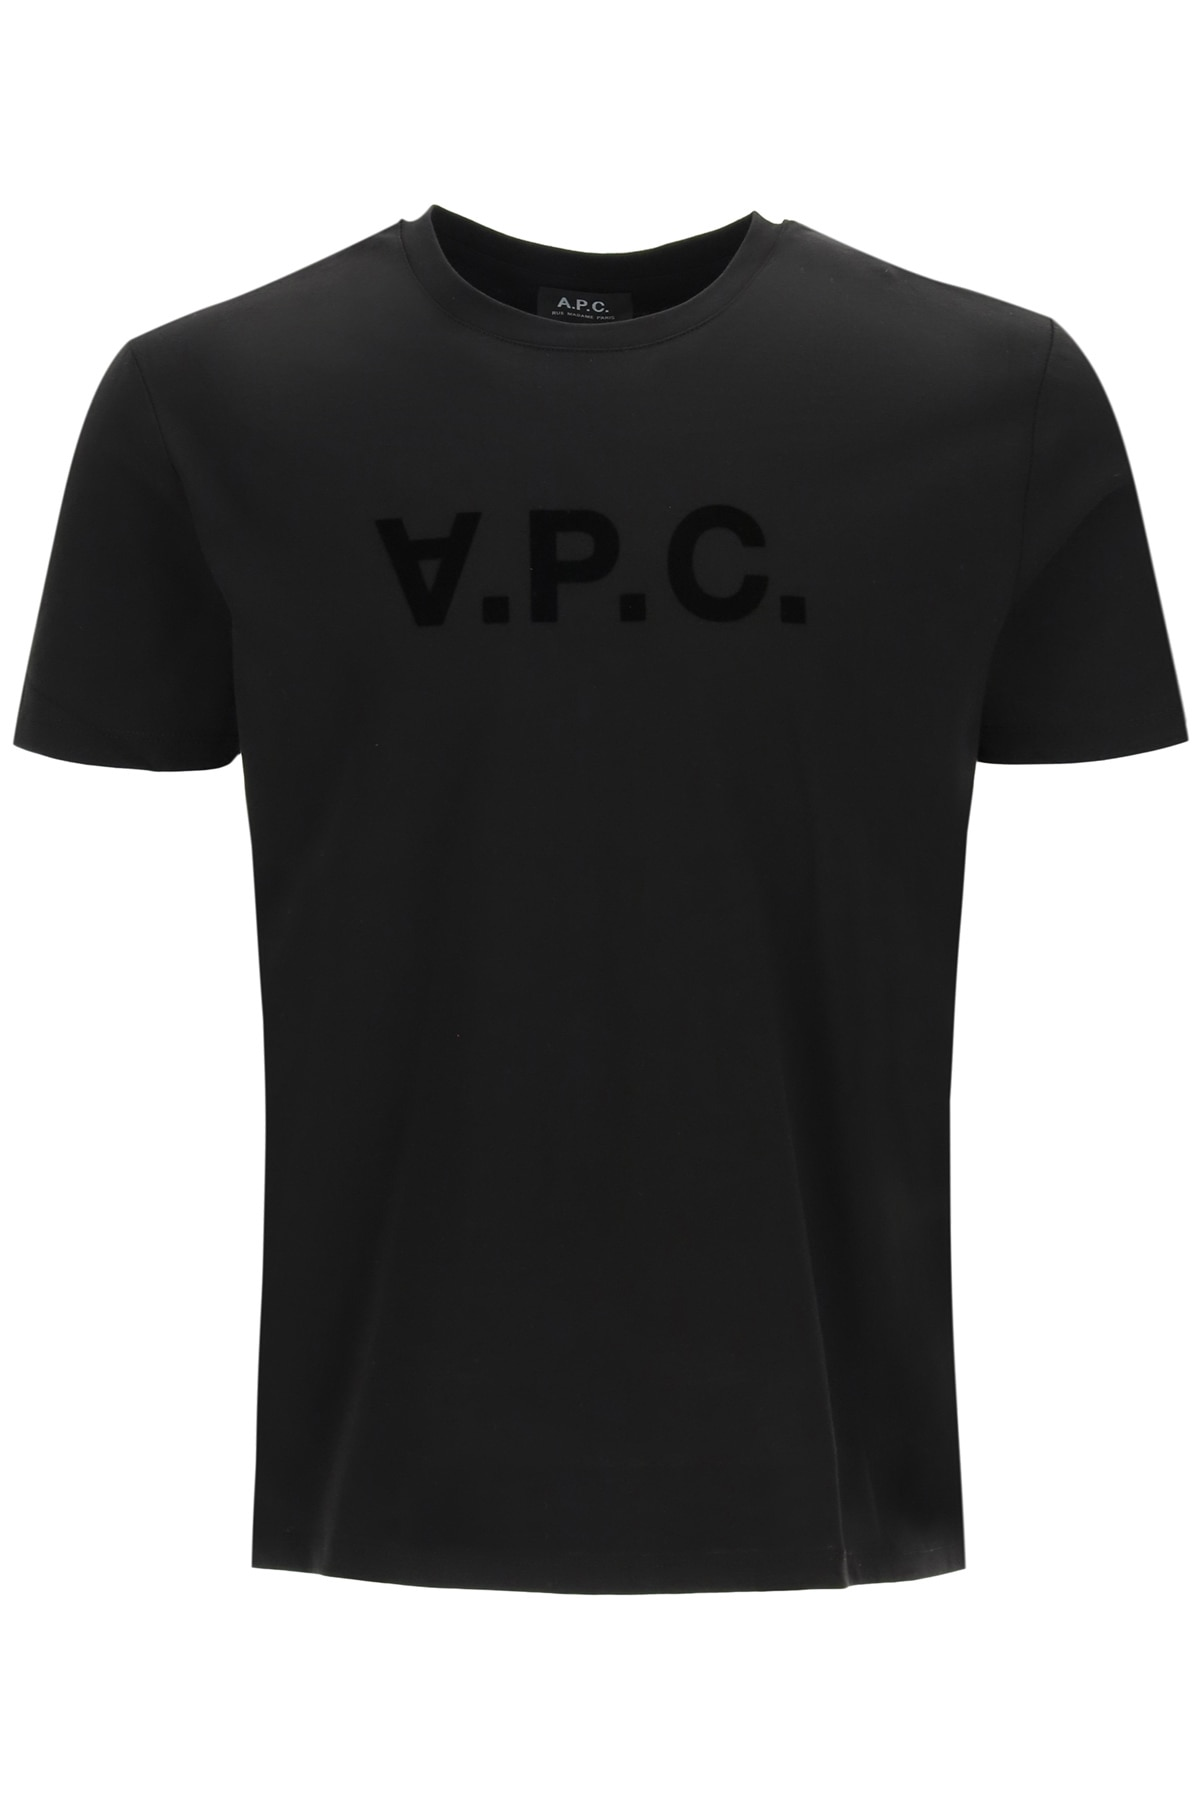 A.P.C. T-SHIRT WITH VPC FLOCK LOGO S Black Cotton